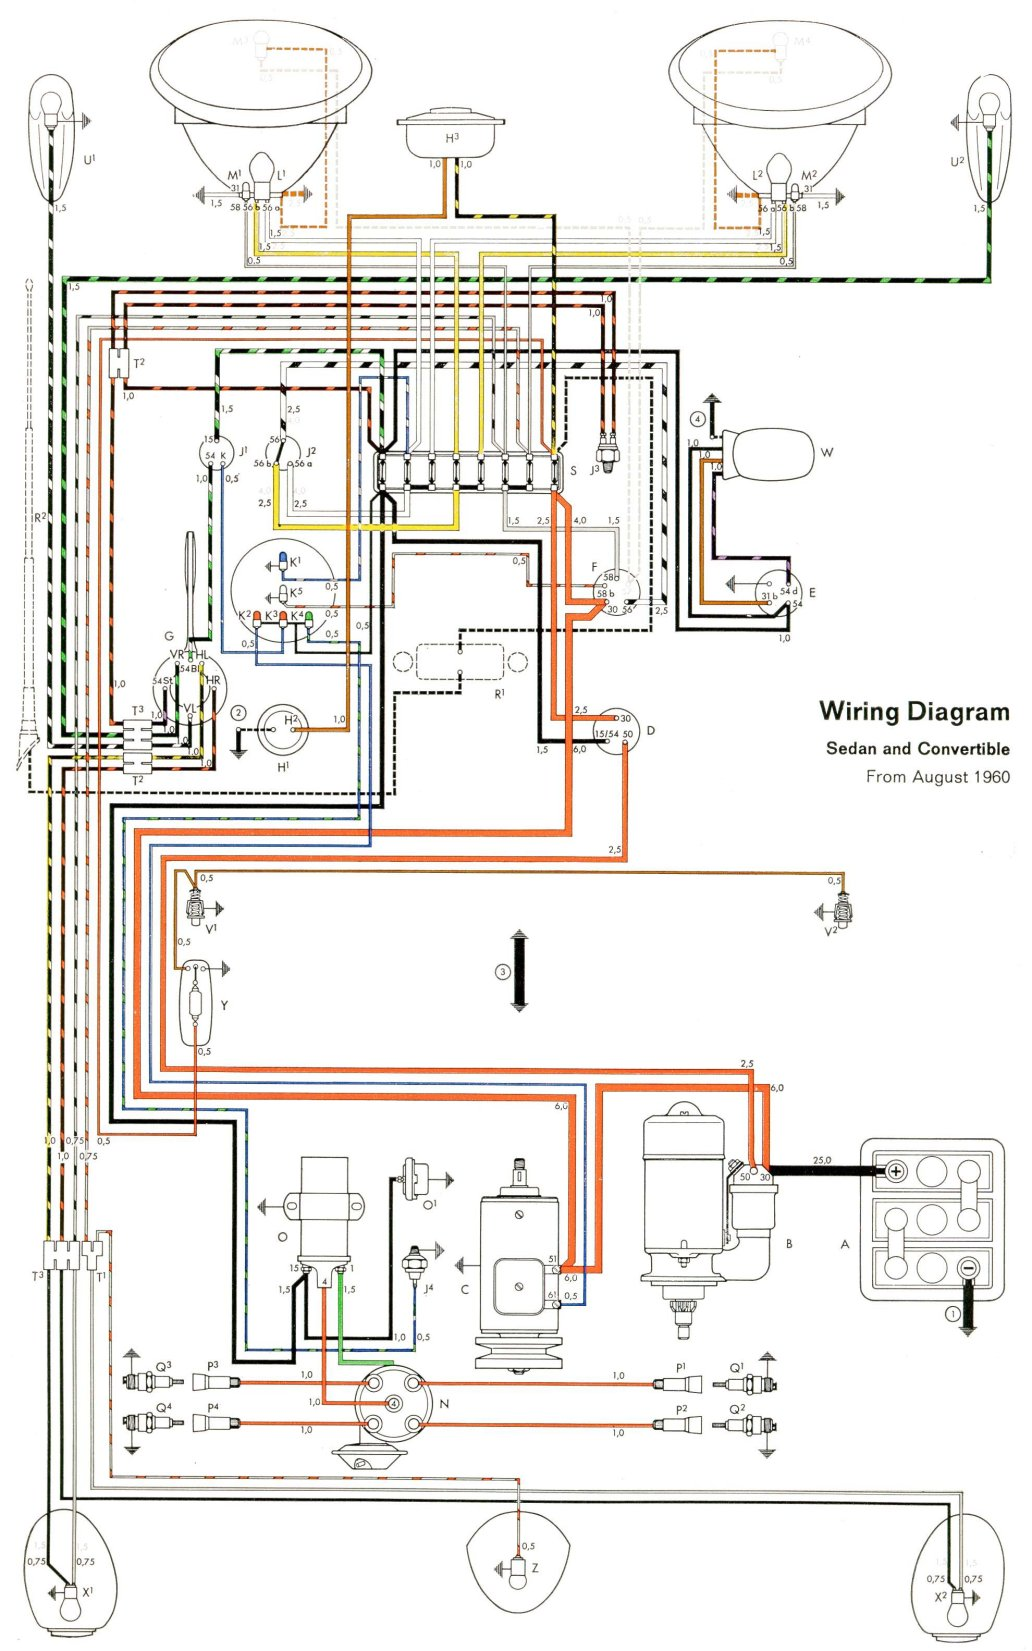 Vw Wiring Diagram Simple Dune Buggy Basic Thesamba Com Type 1 Diagrams